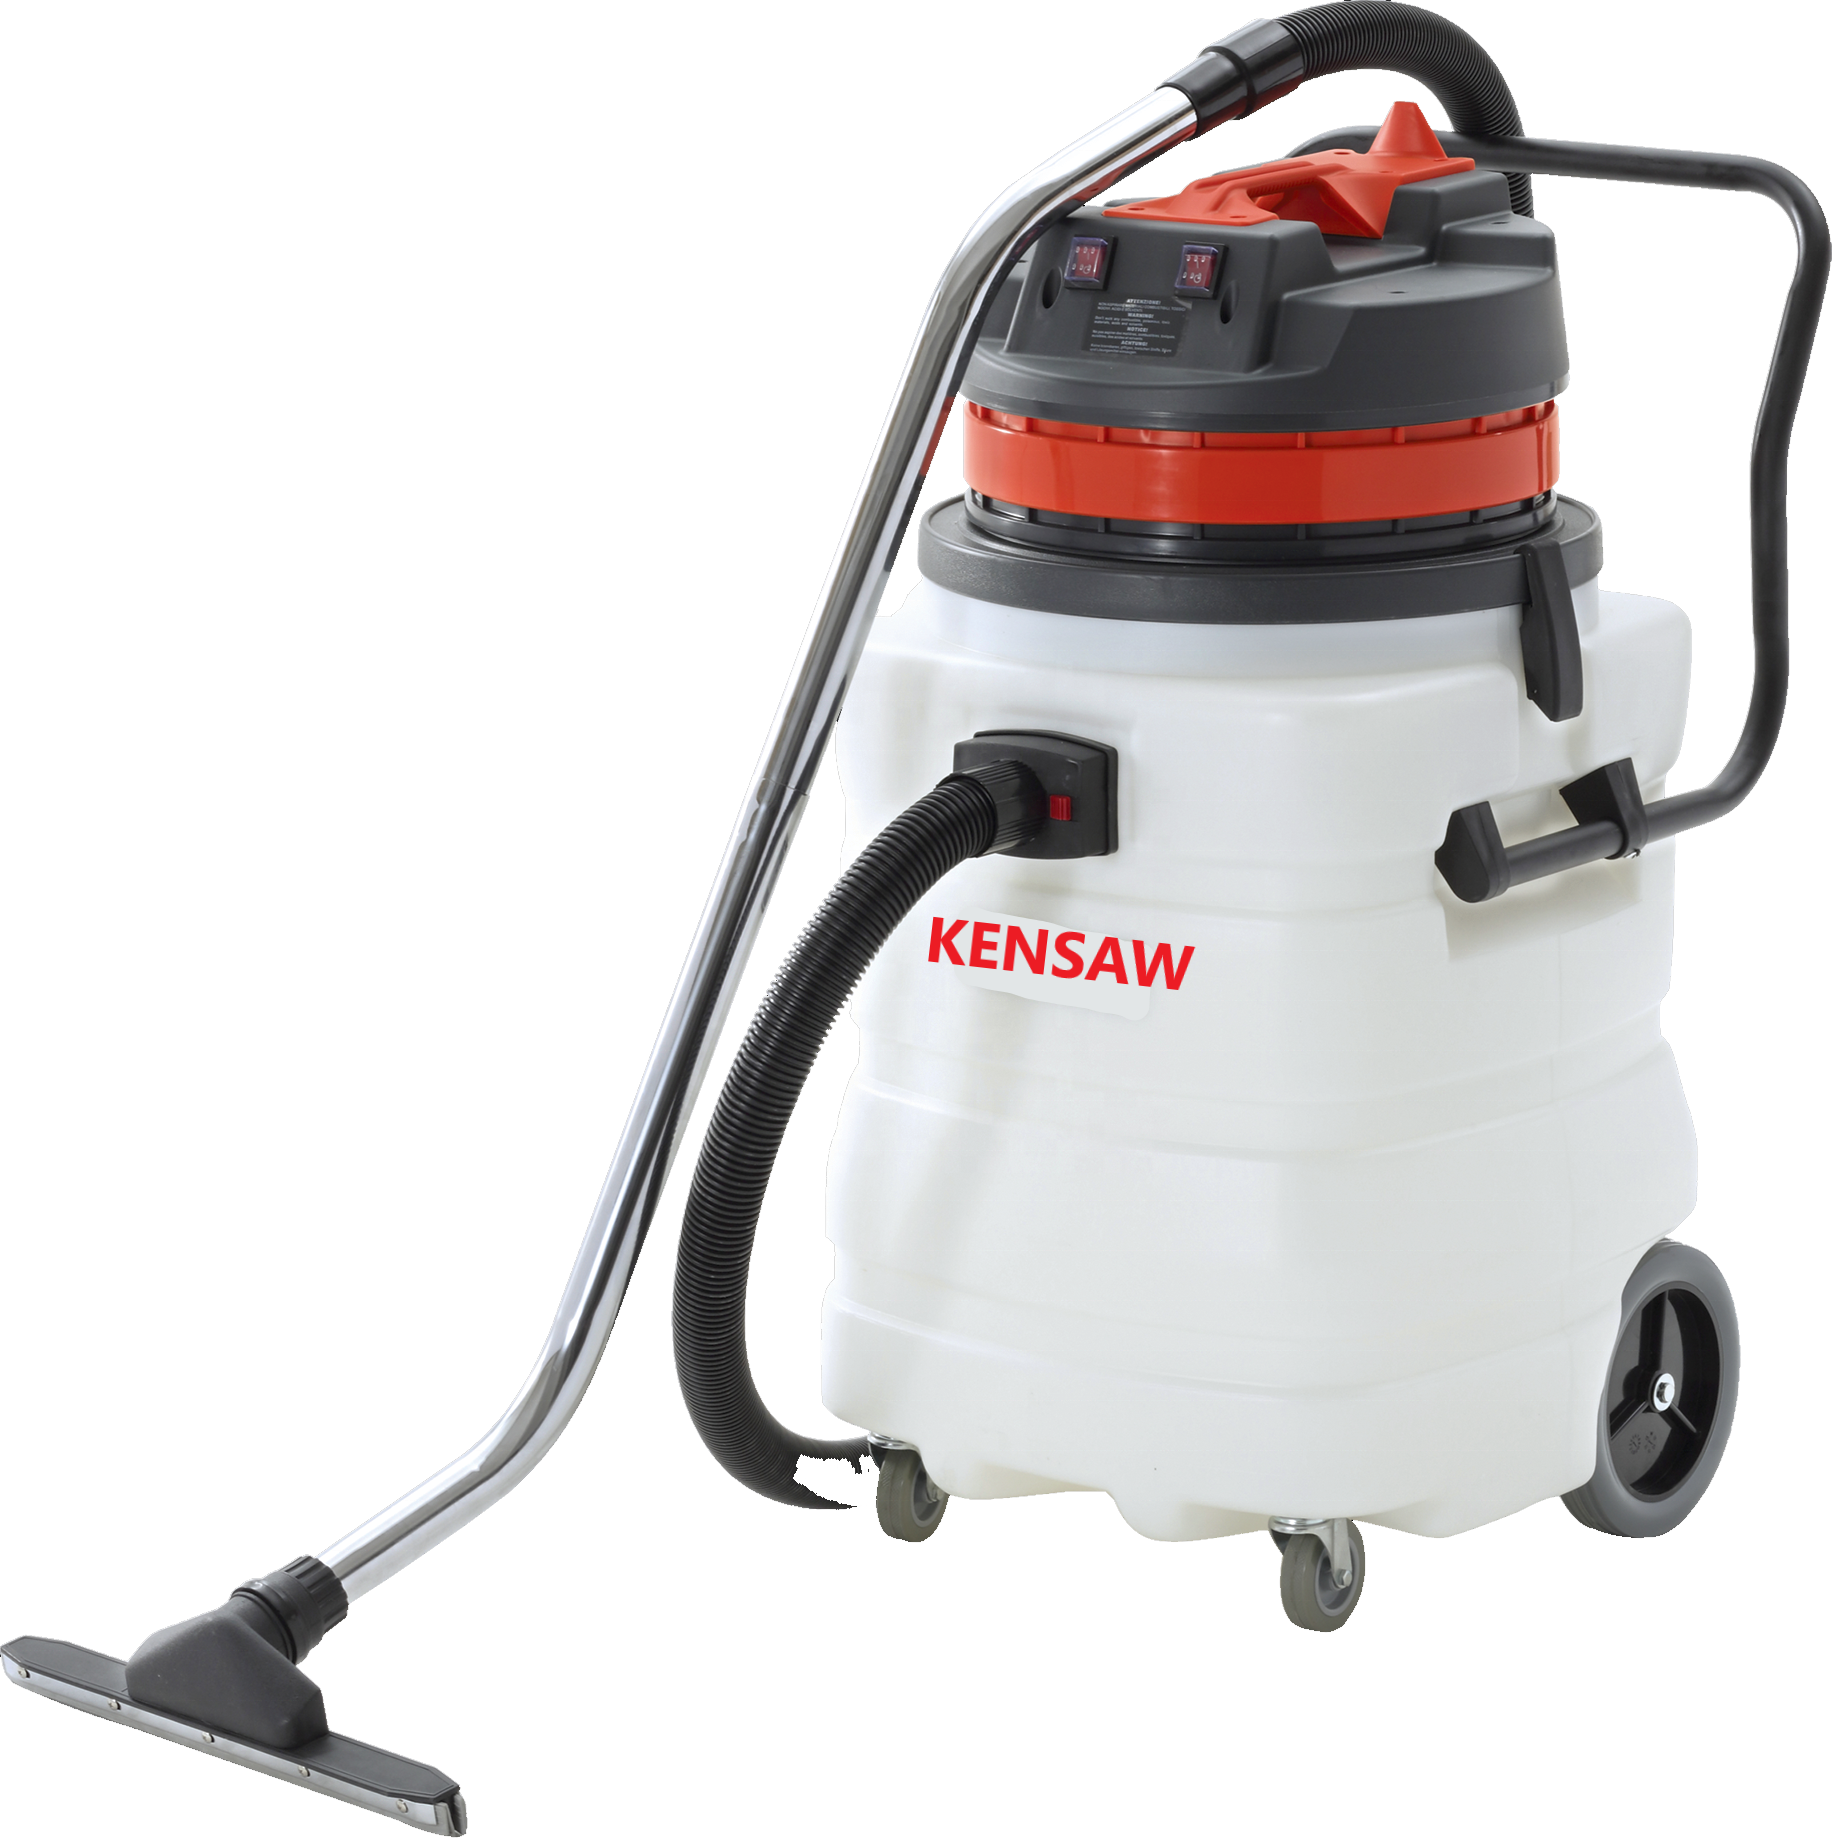 Kensaw Industrial Wet and Dry Vacuum 110v